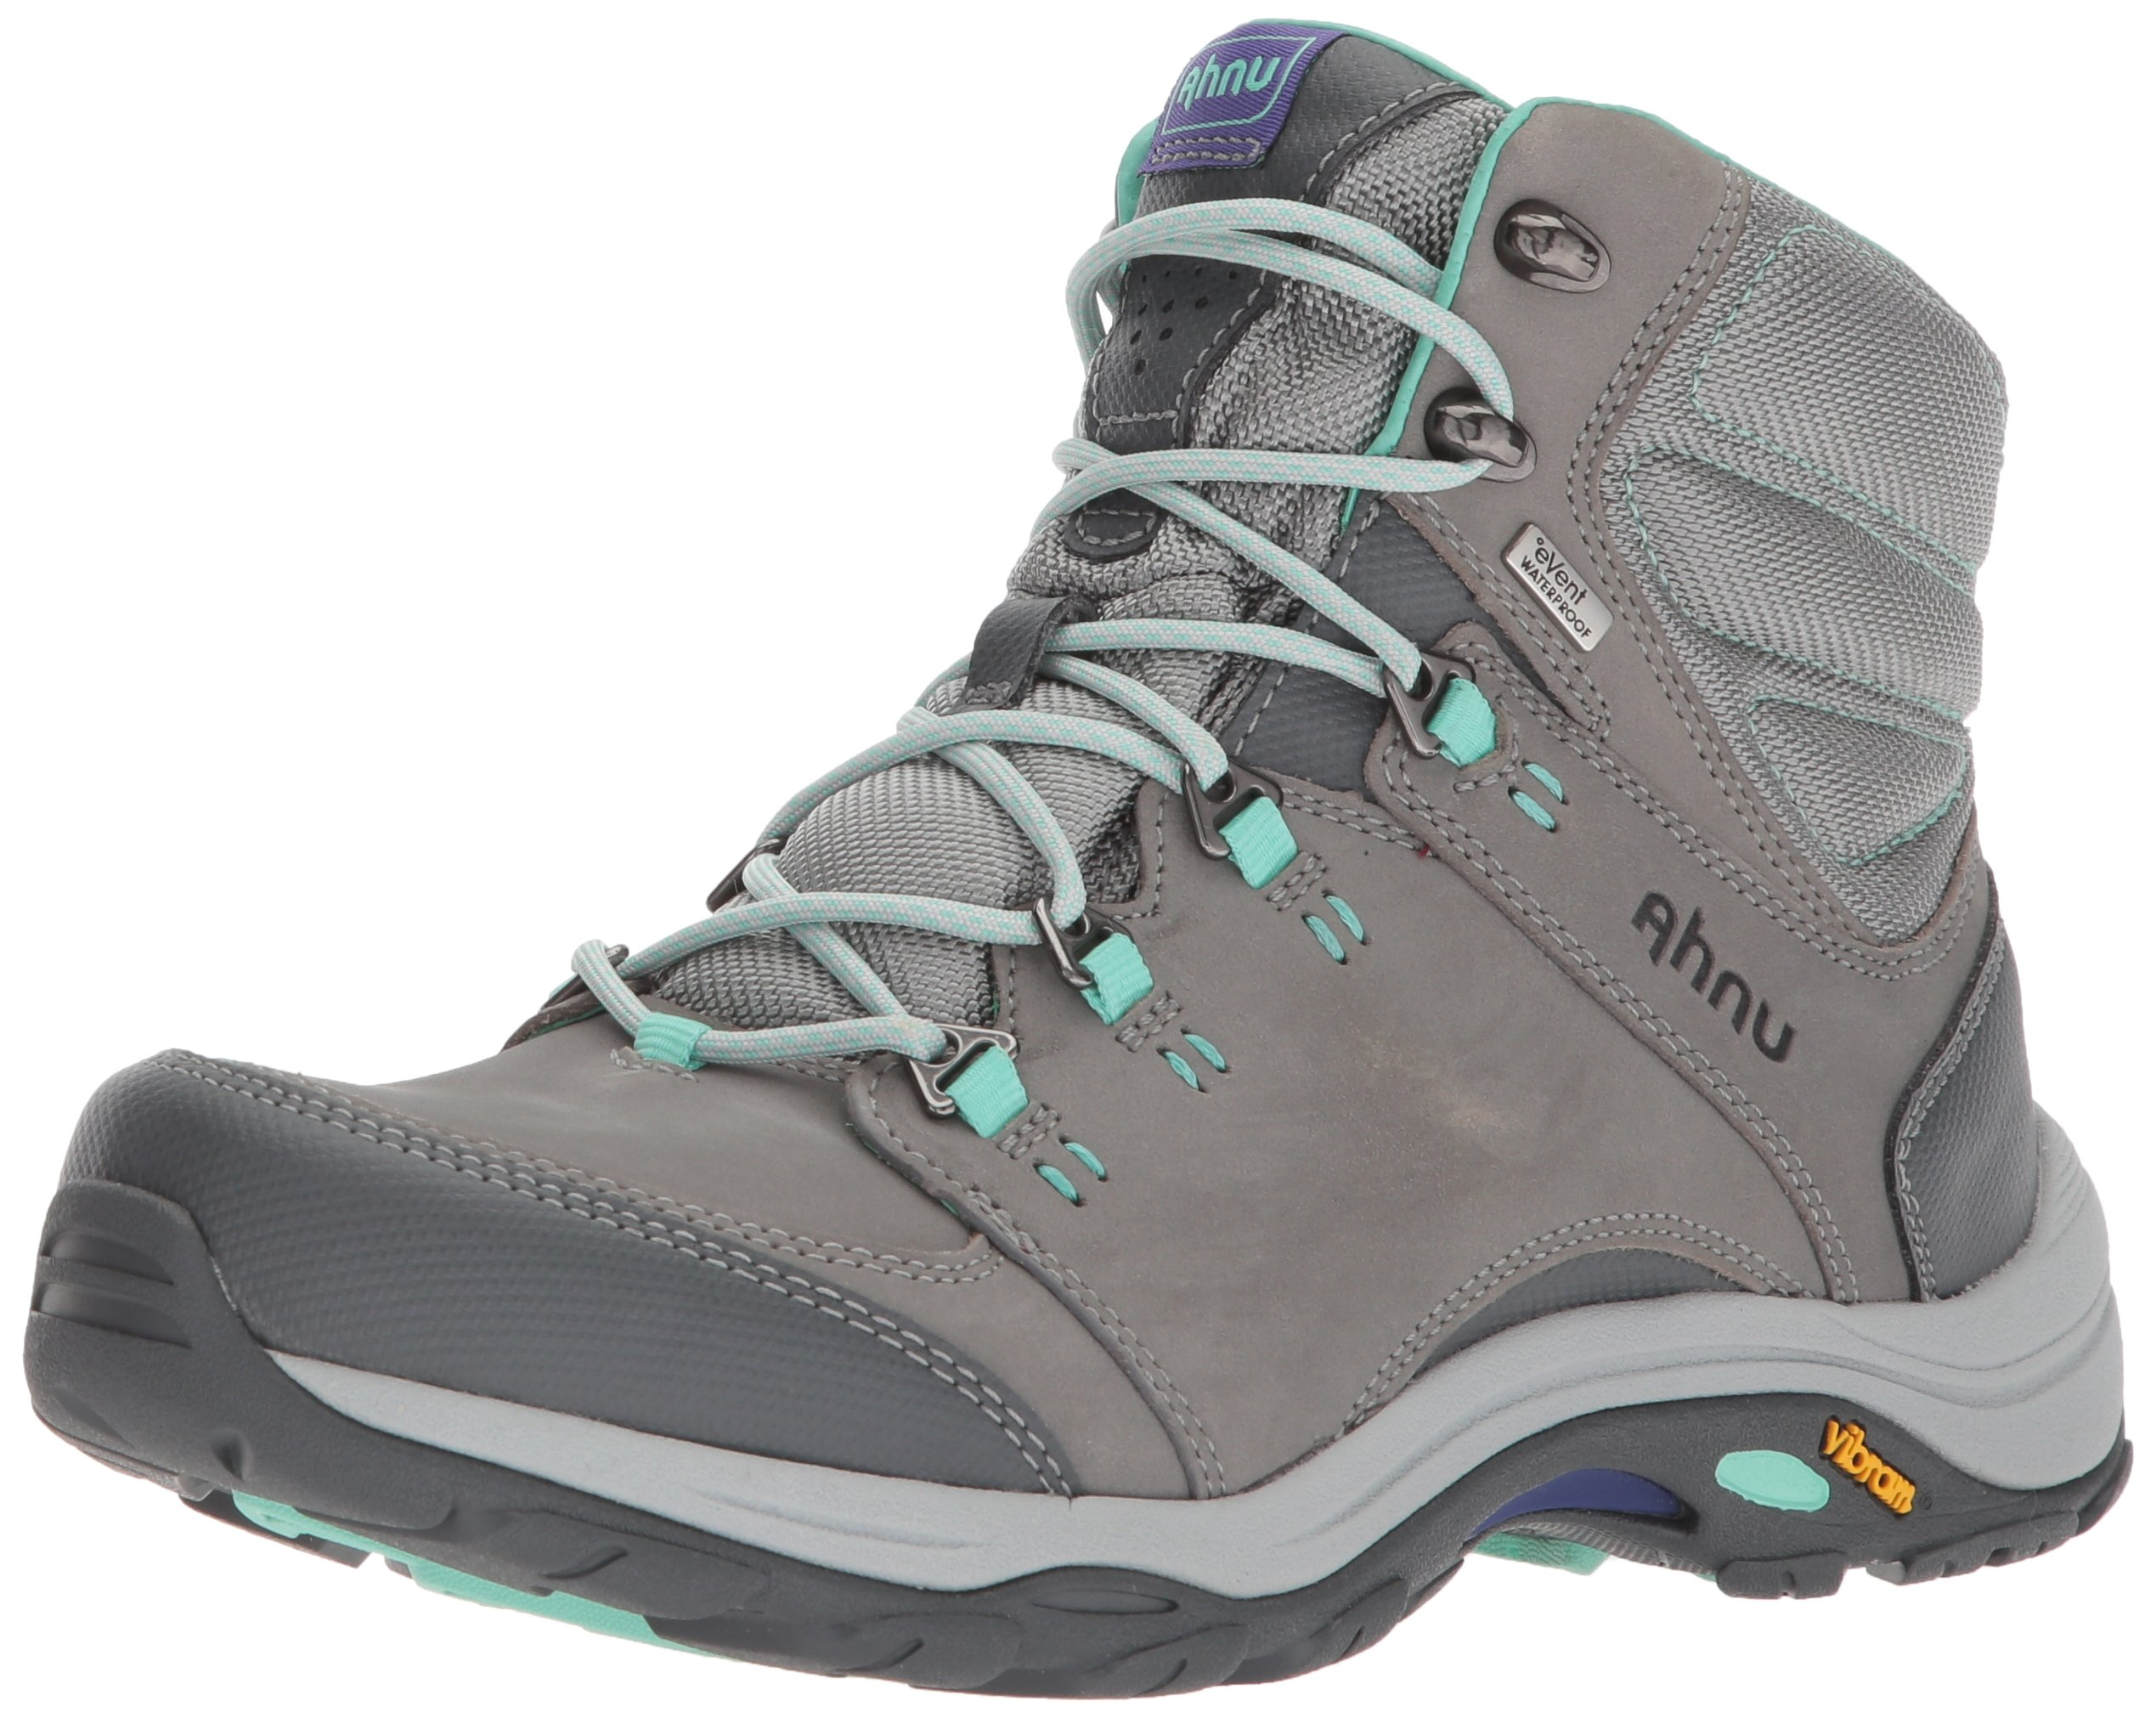 Ahnu Women's Montara III Boot Event Hiking, ild Dove, 8.5 Medium US by Ahnu